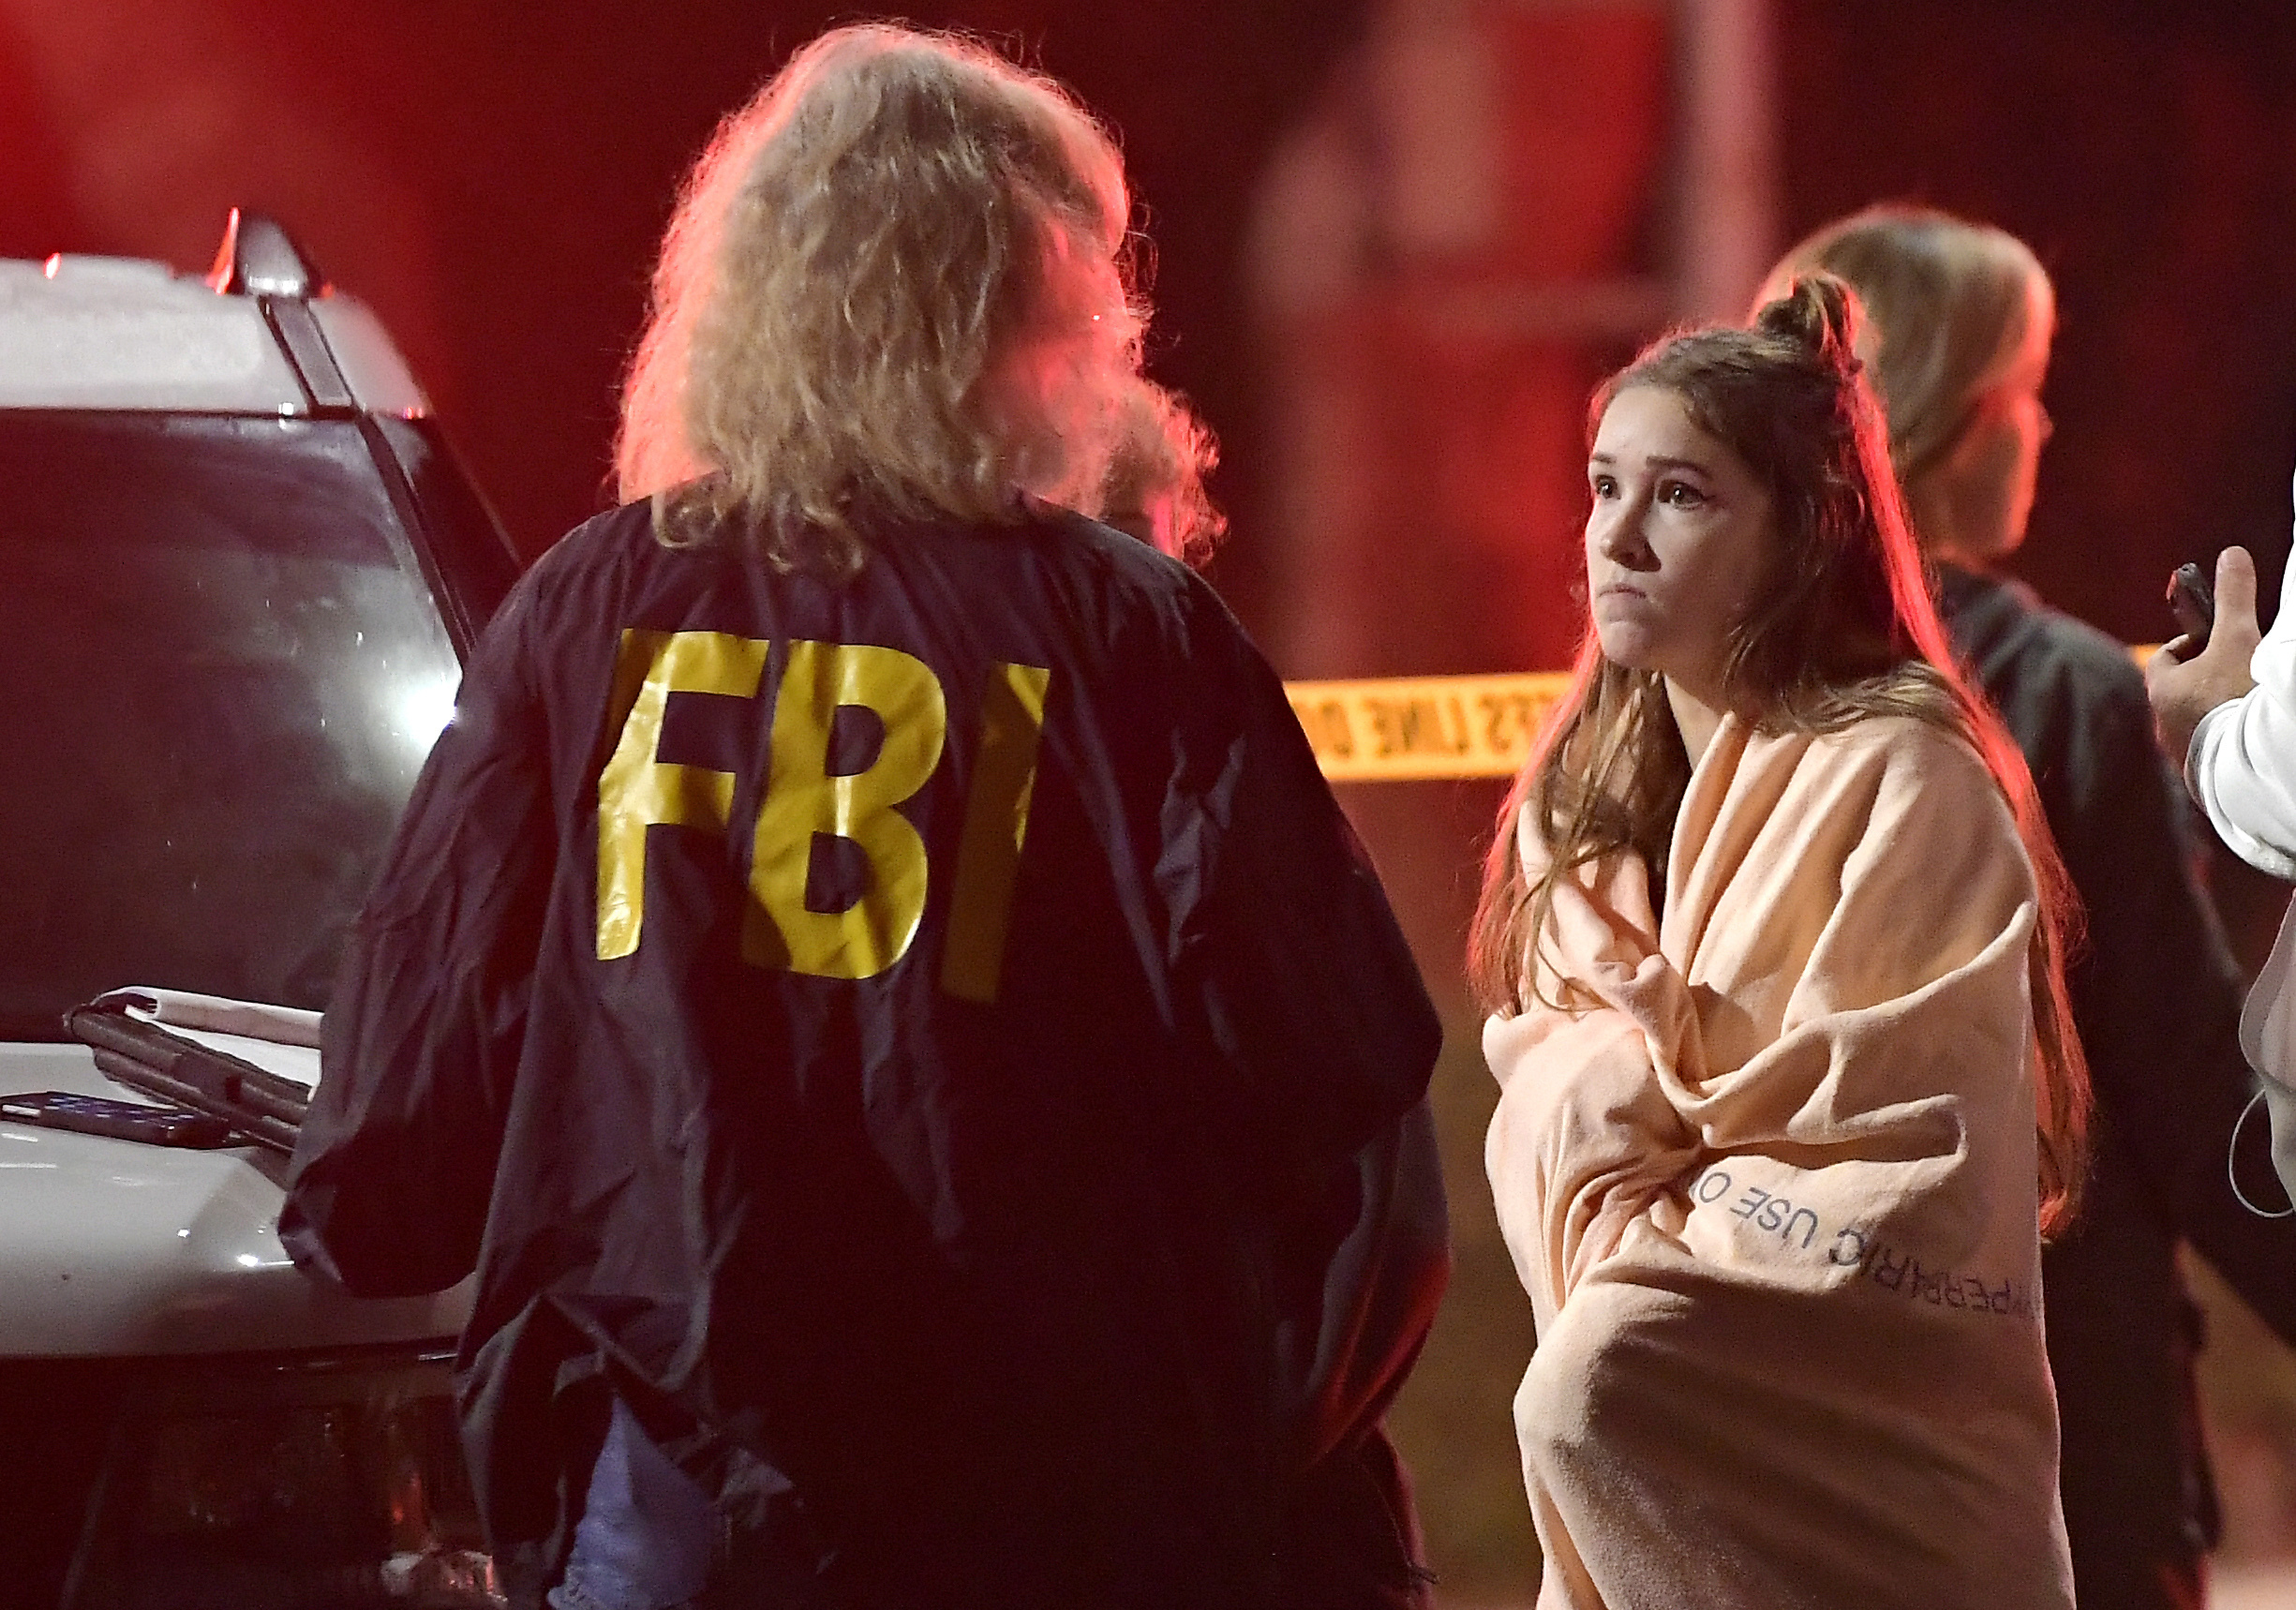 <div class='meta'><div class='origin-logo' data-origin='none'></div><span class='caption-text' data-credit='AP Photo/Mark J. Terrill'>An FBI agent talks to a potential witness at a shooting at a California nightclub.</span></div>